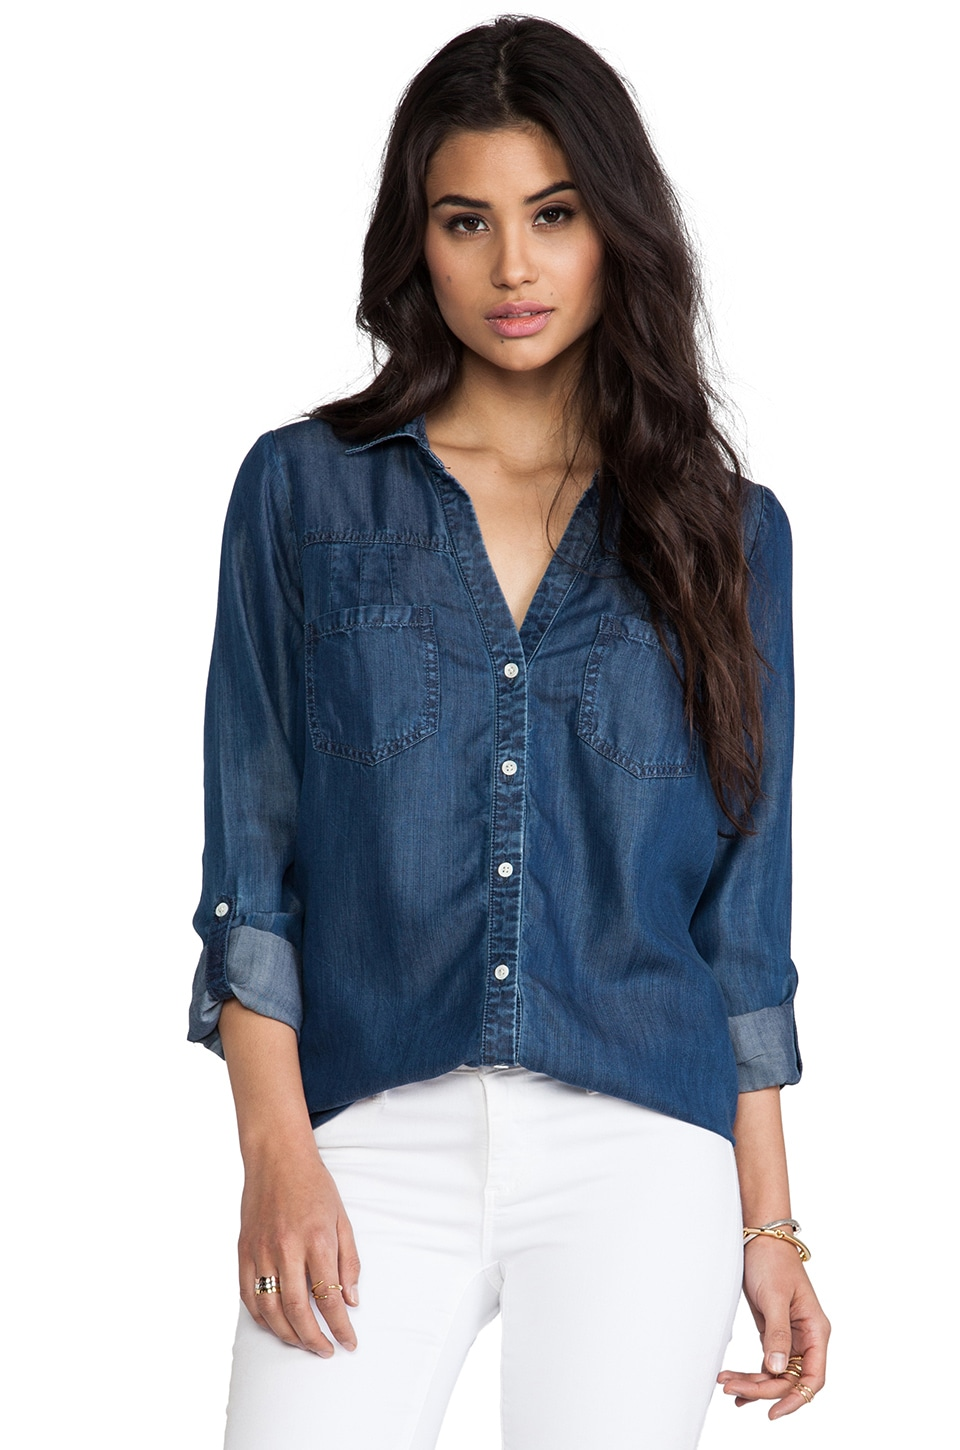 Soft Joie Brady Shirt in Medium Indigo